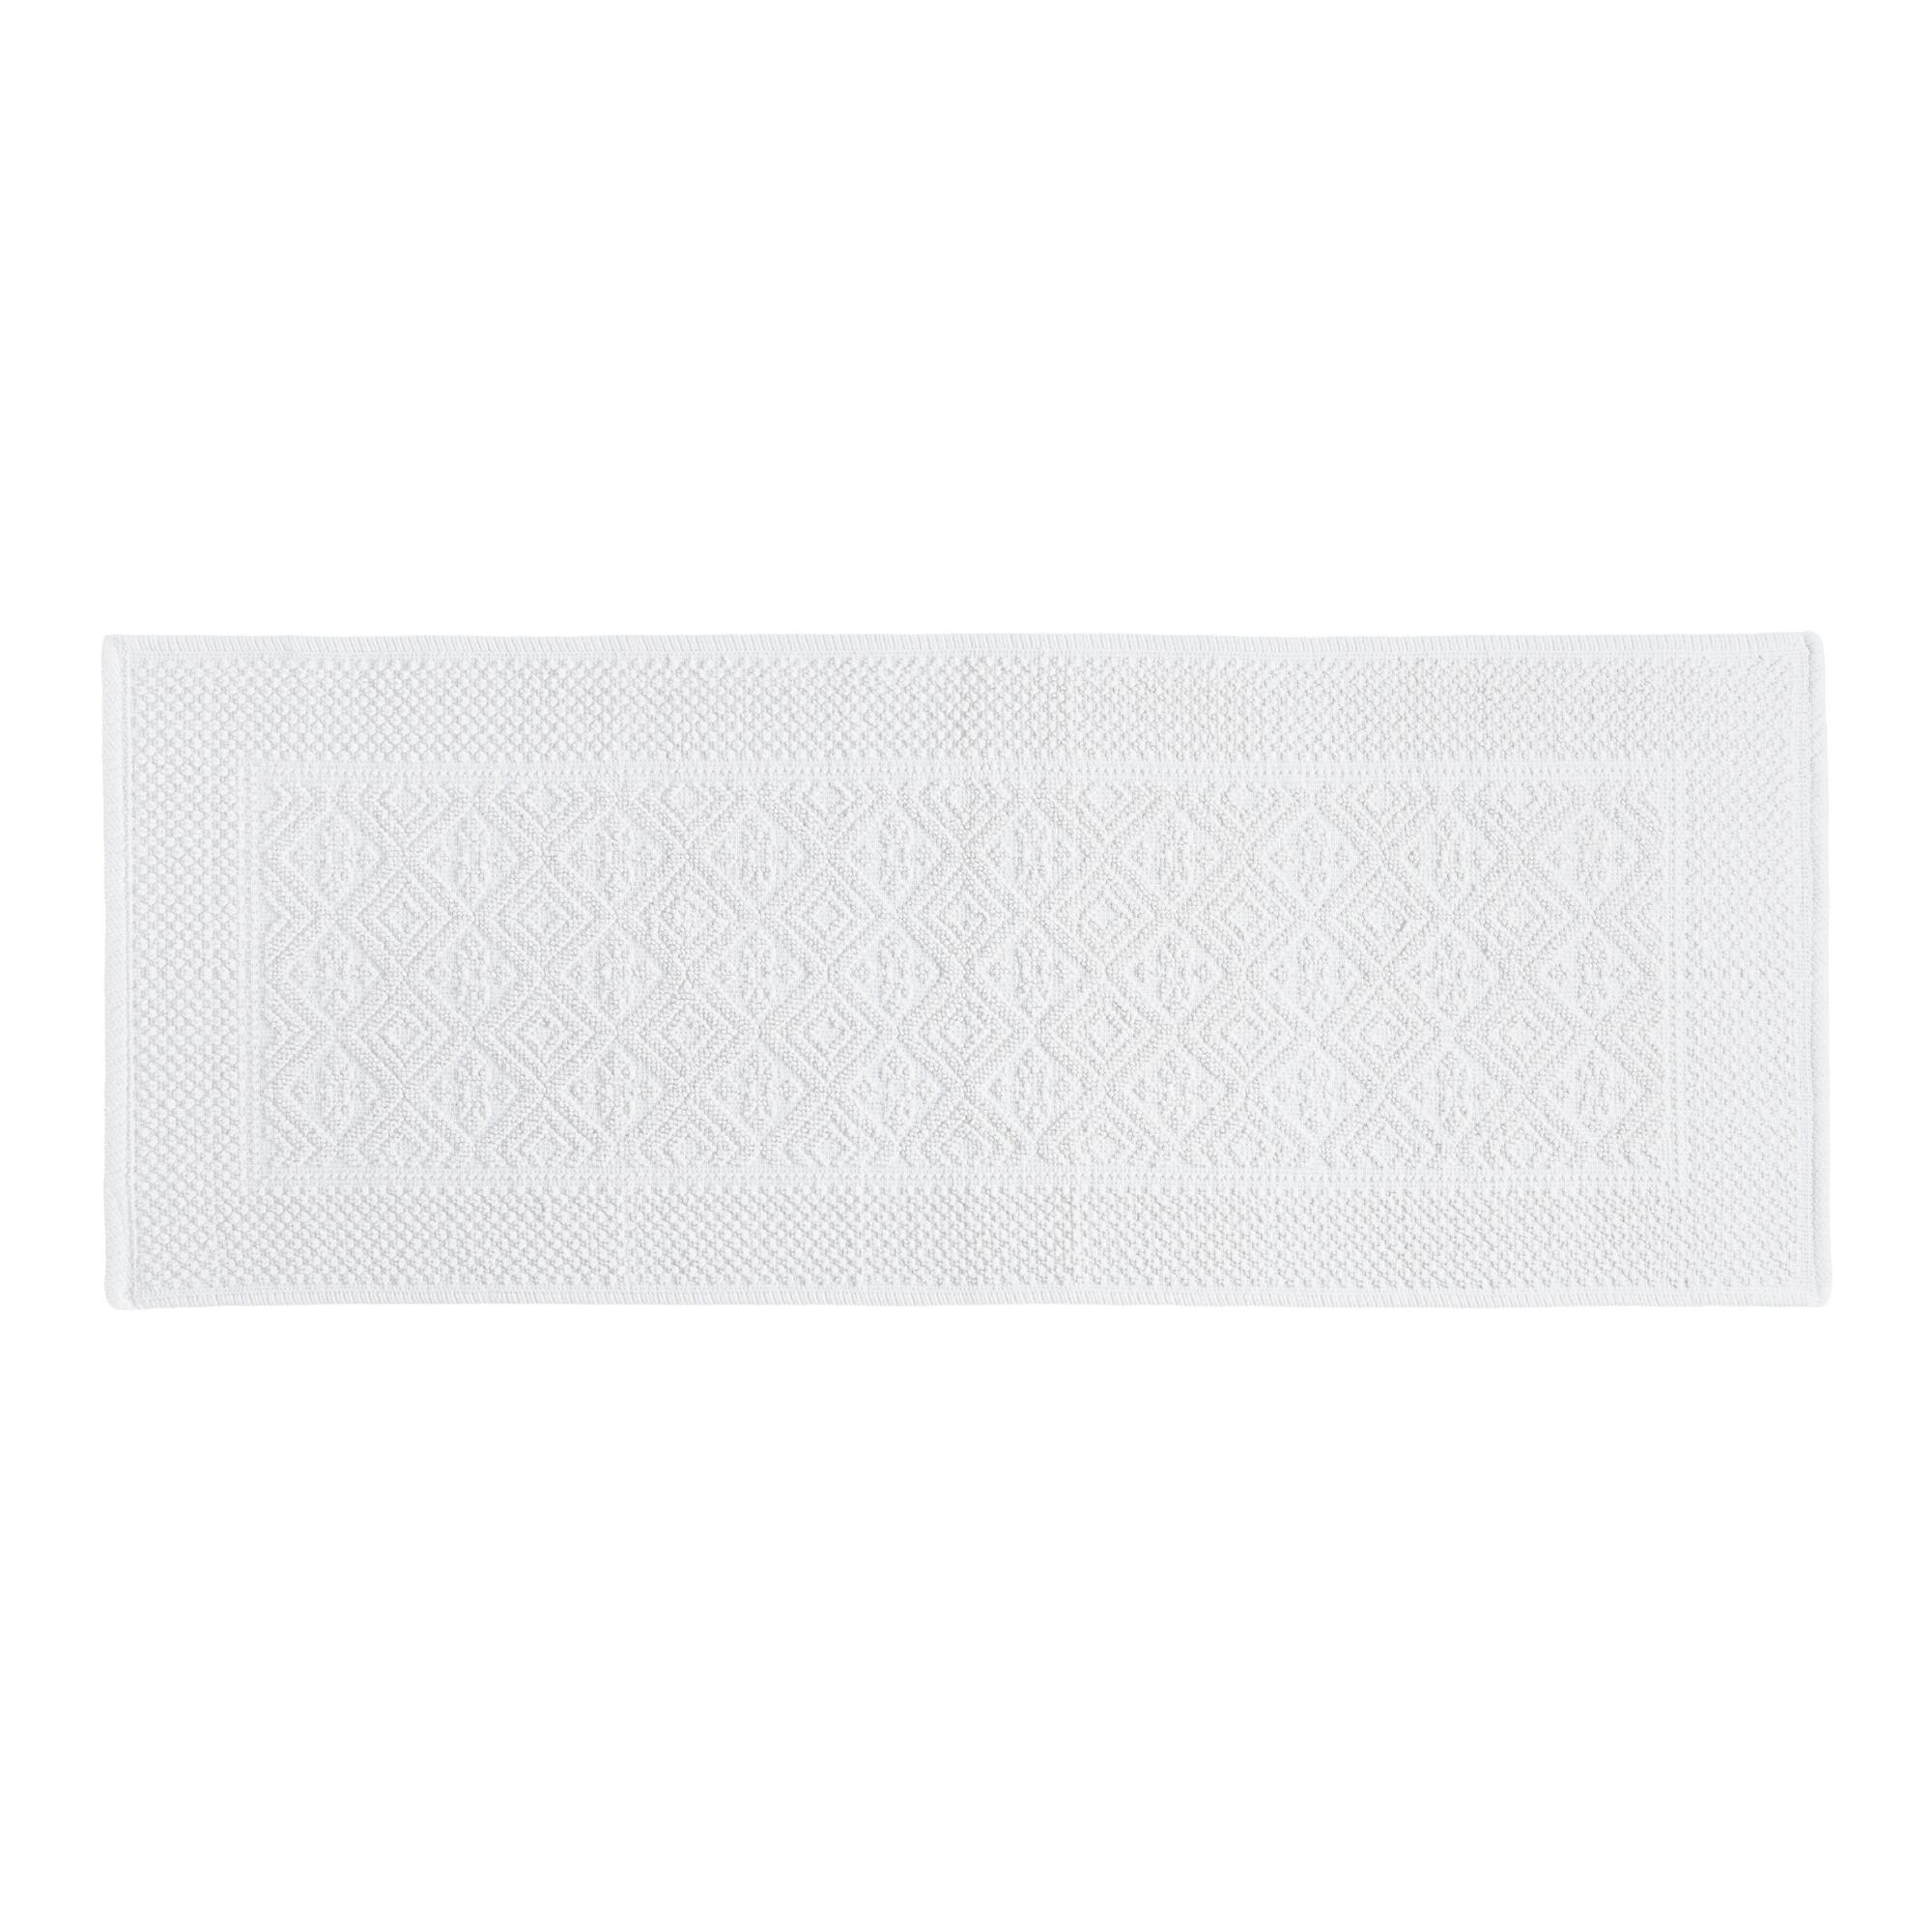 Very large bath rugs search - White Large Woven Bath Mat